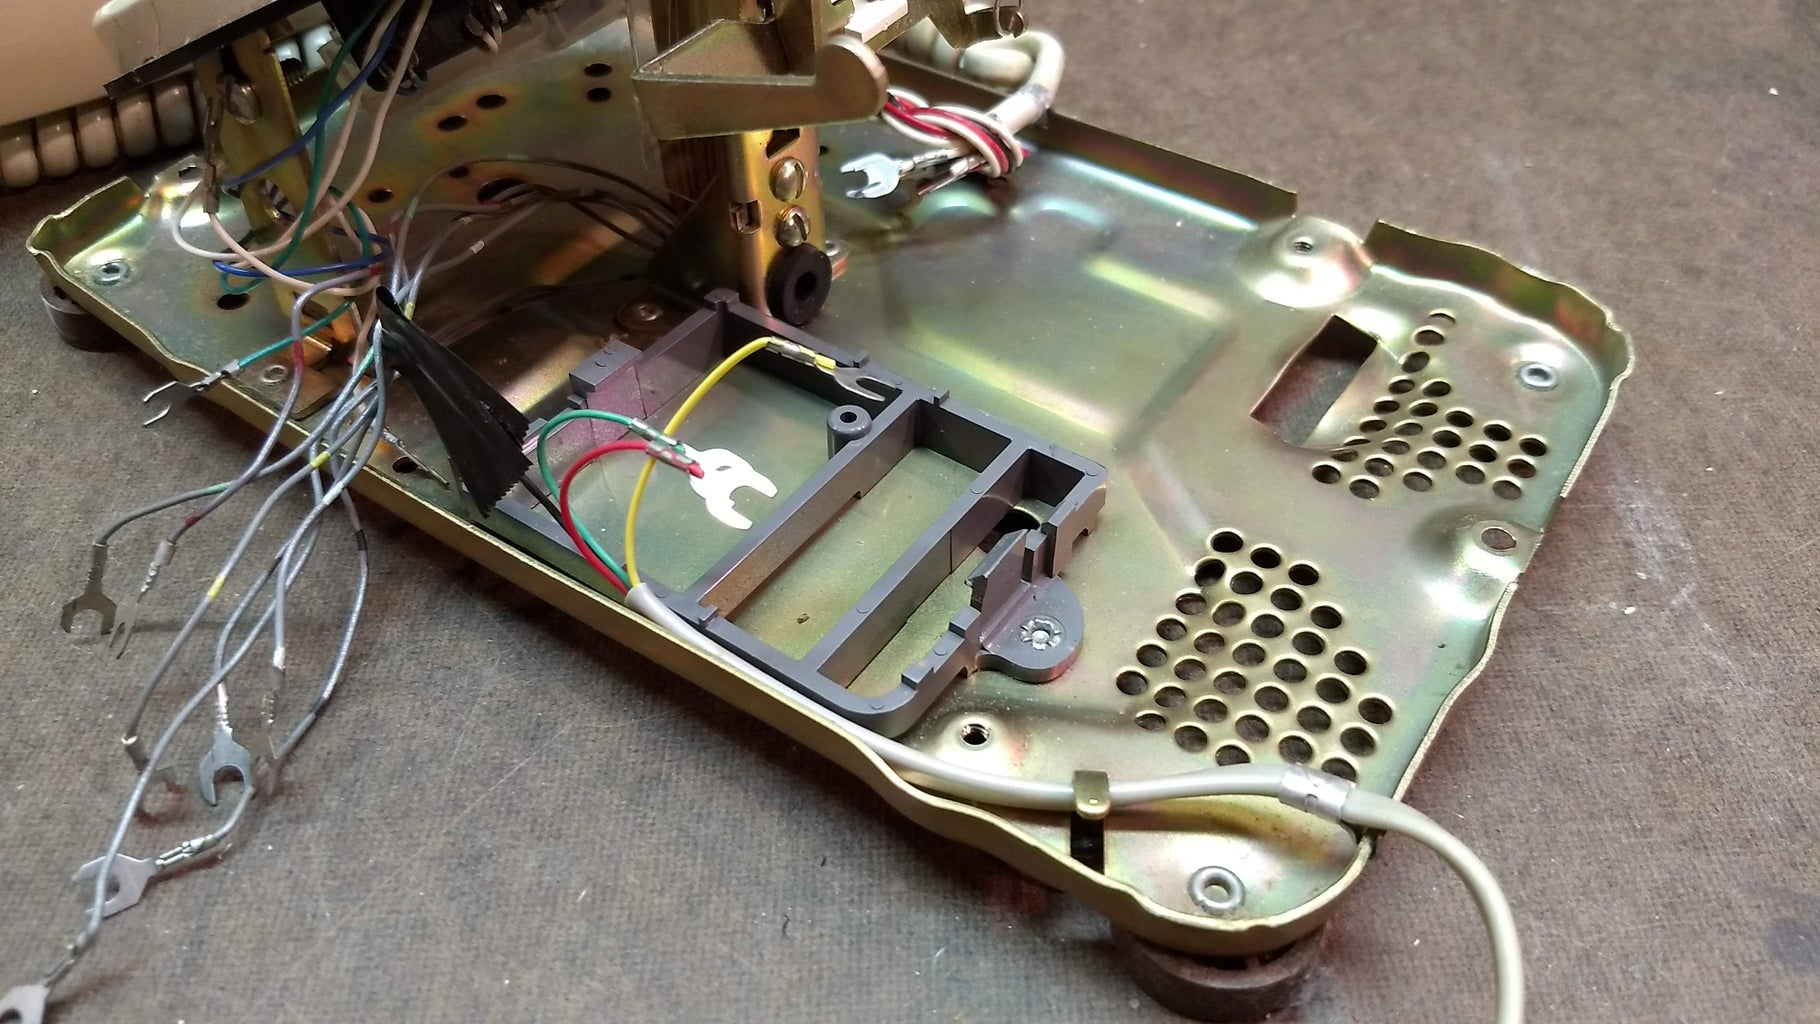 Disassemble and Gut the Phone